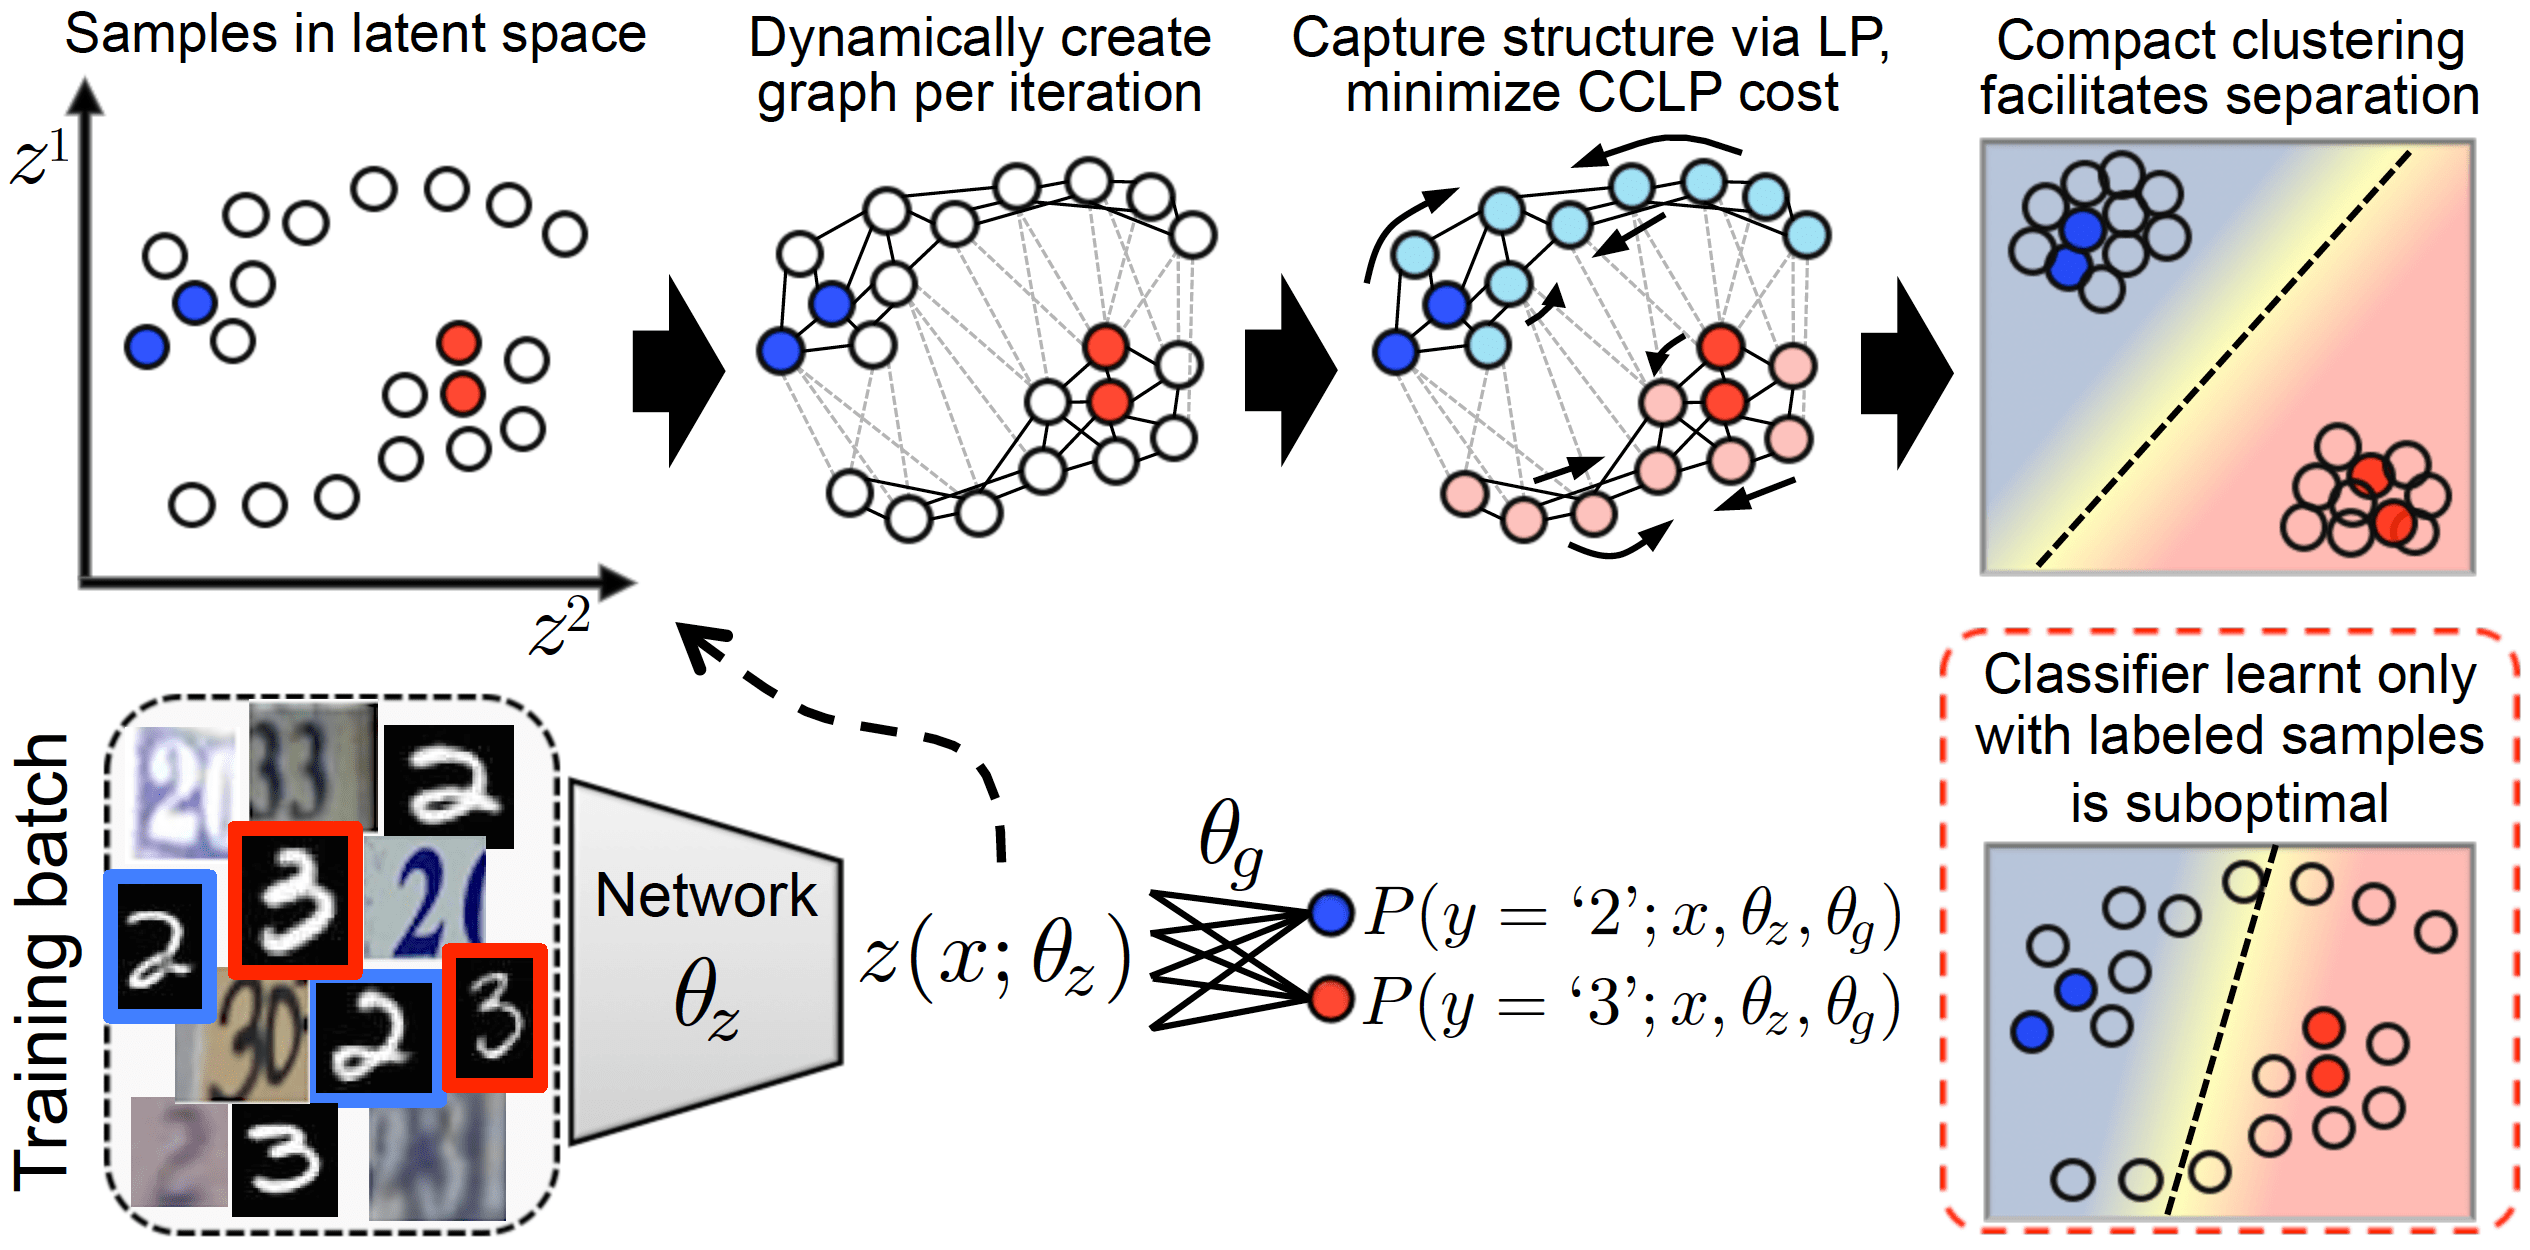 Semi-Supervised Learning via Compact Latent Space Clustering